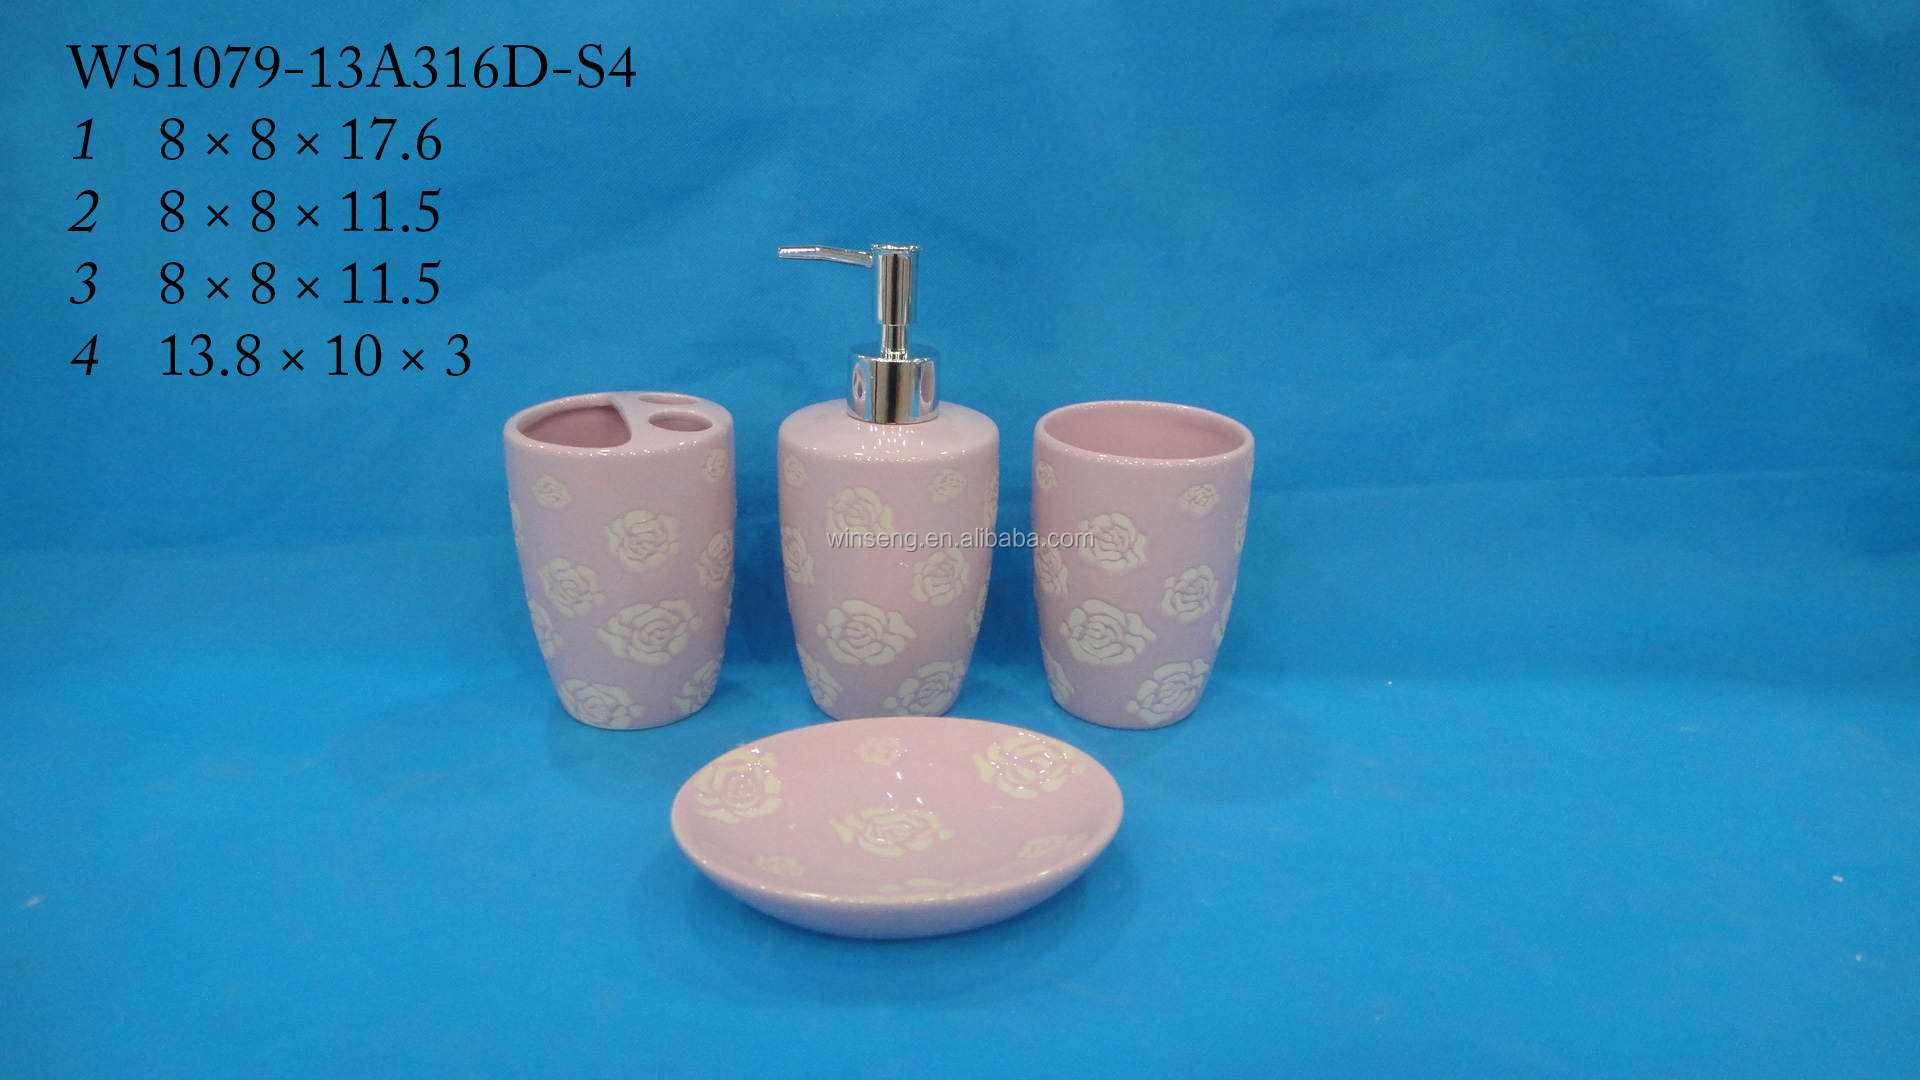 Ceramic pink rose hotel collection bath accessories set